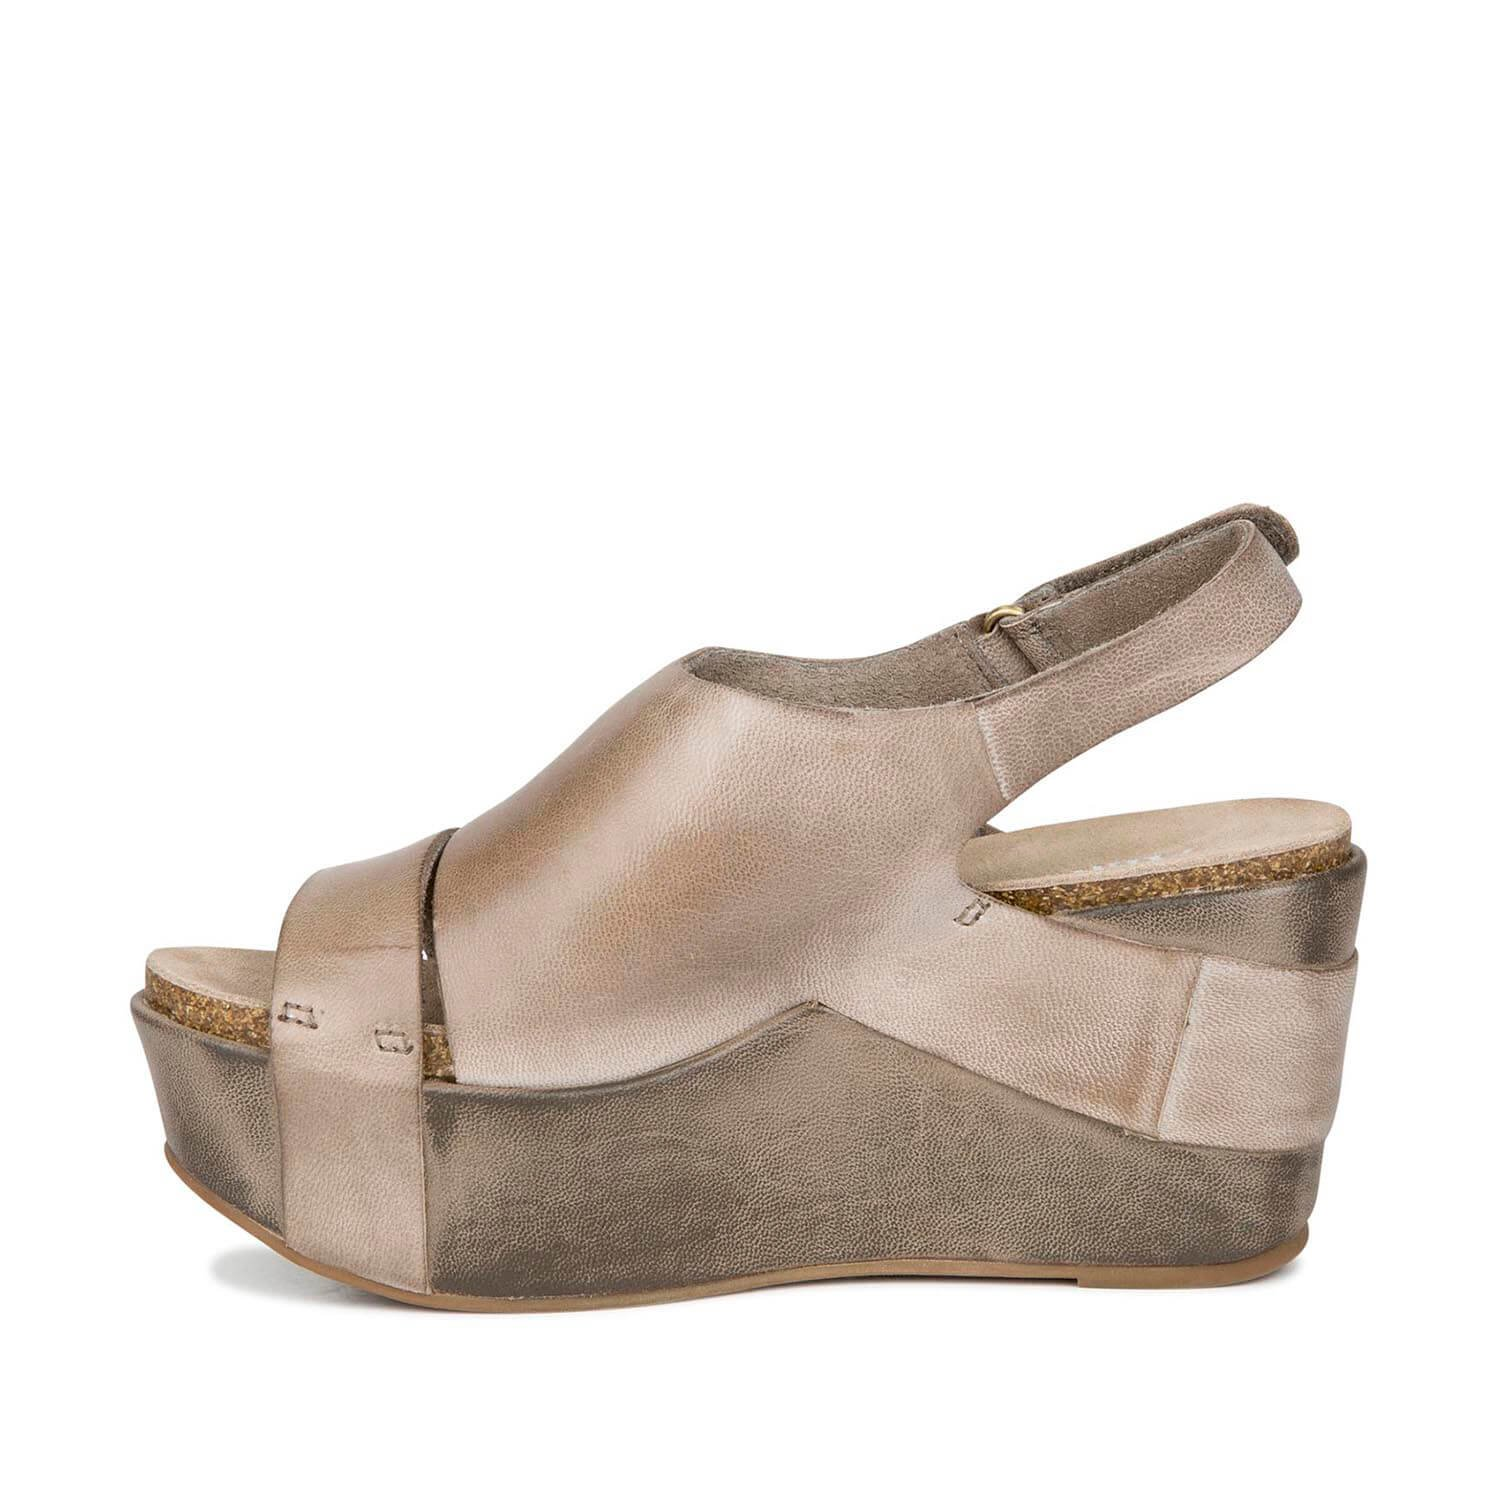 Antelope Women's 861 Leather Wrap & Cut Sandals B00TO9H33K 6-6.5 B(M) US|Grey